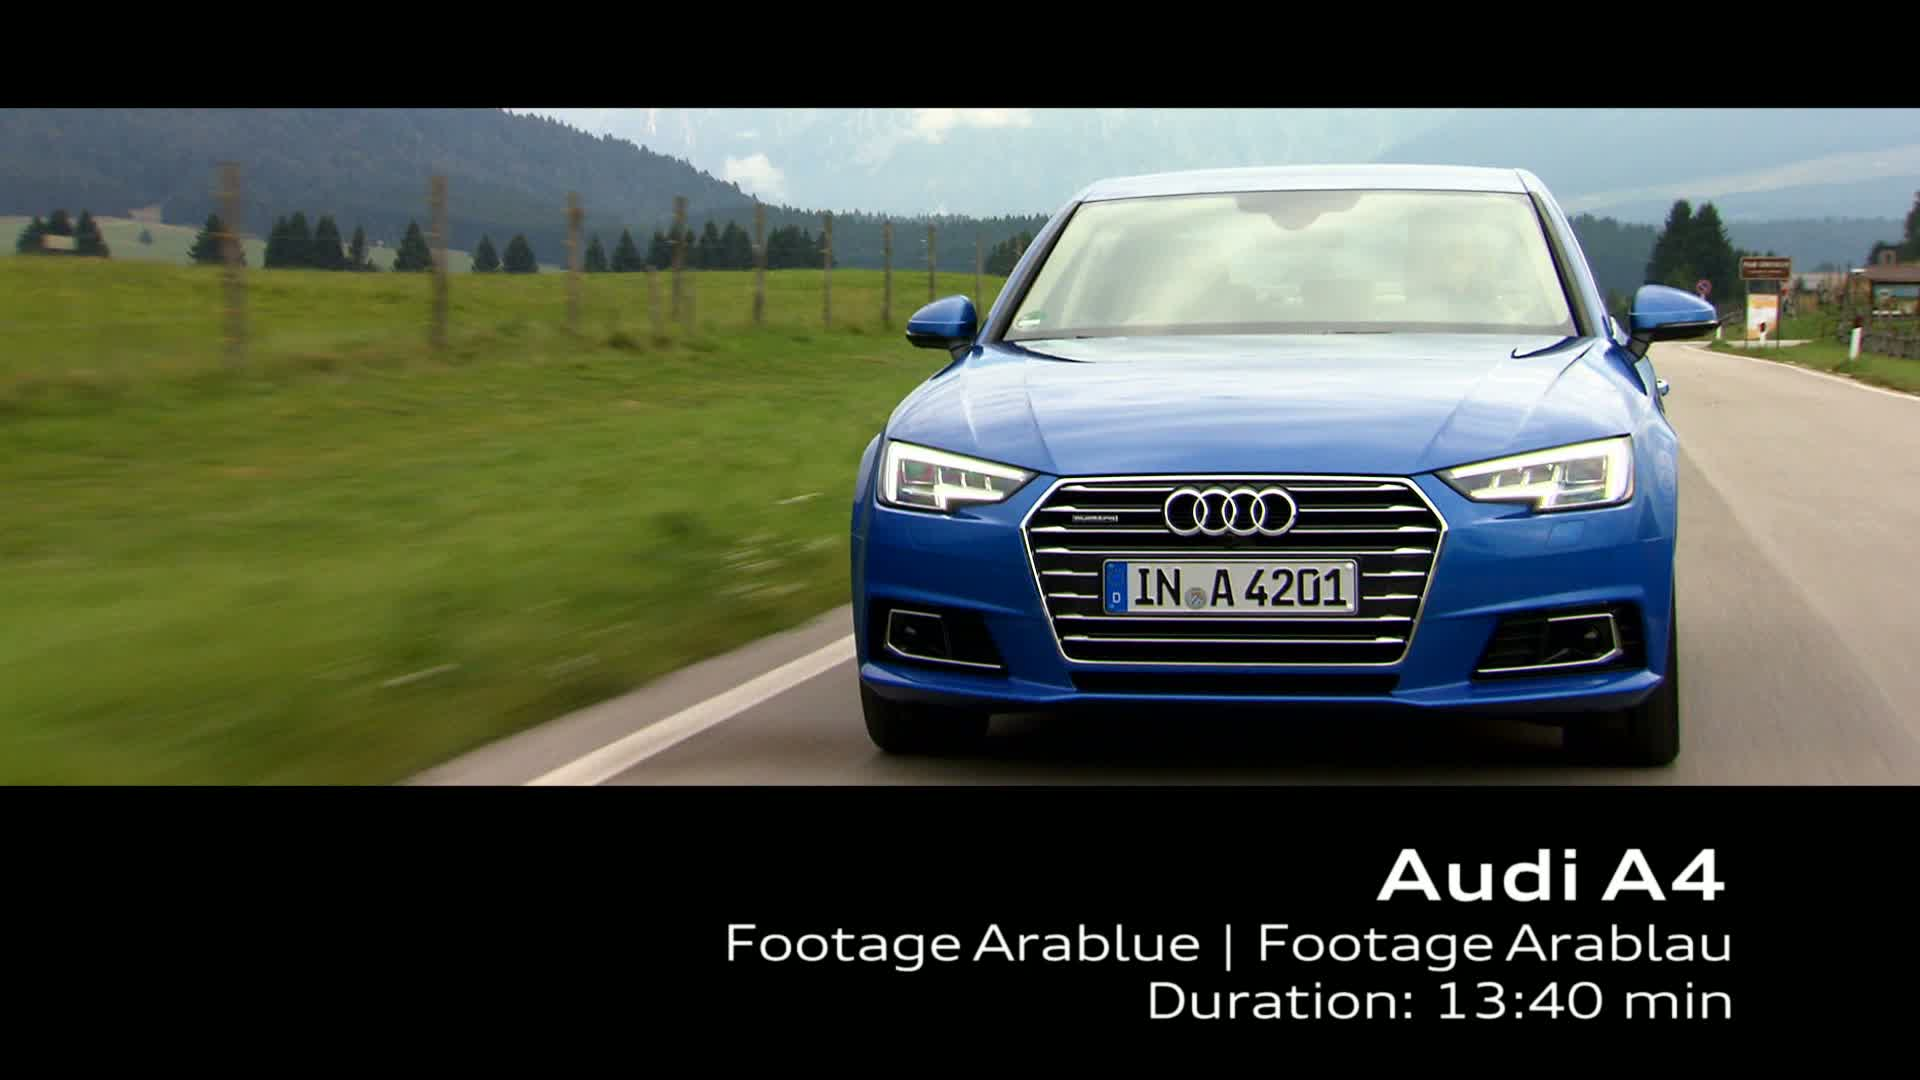 Audi A4 - Footage on Location